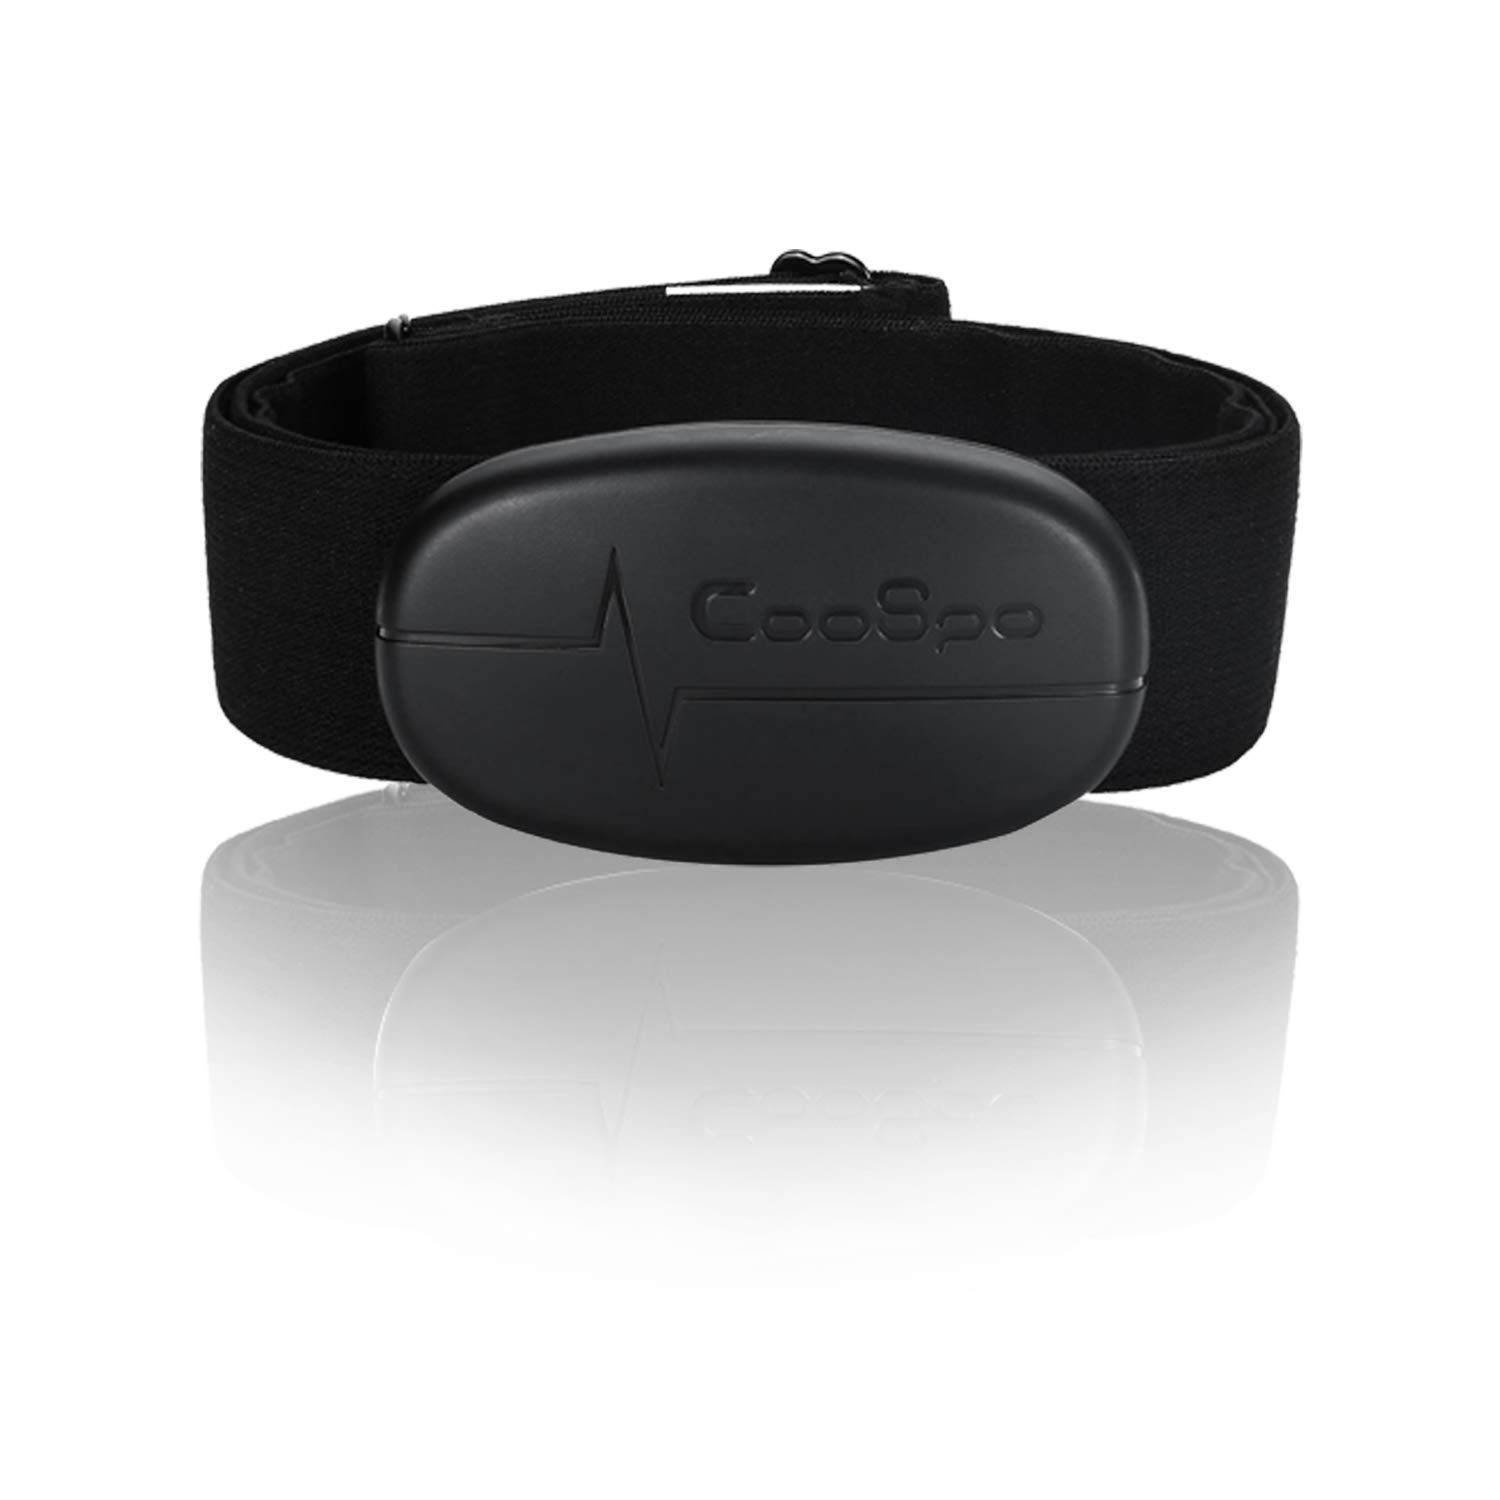 CooSpo Fitness Tracker Ant+ Heart Rate Monitor